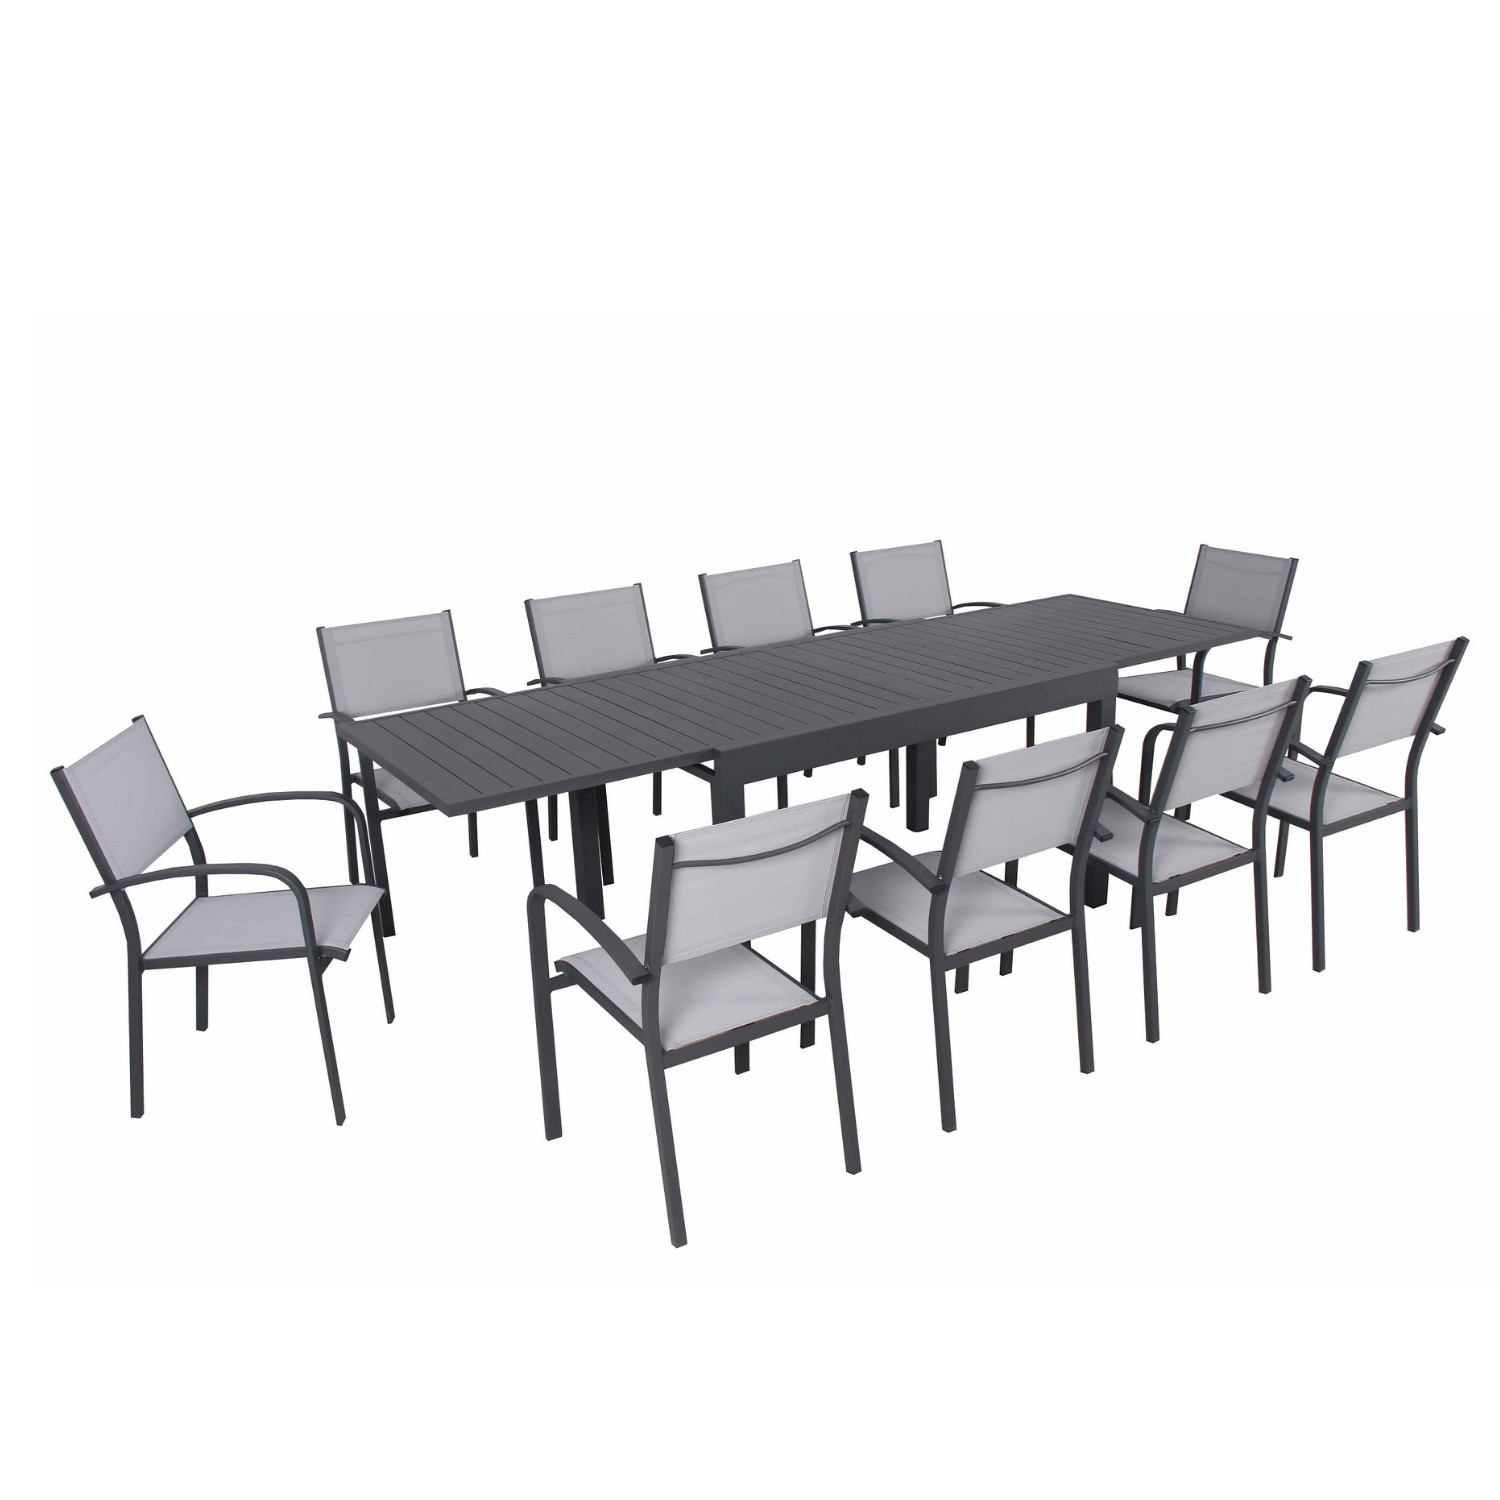 Ensemble de jardin 10 places extensible en aluminium anthracite gris